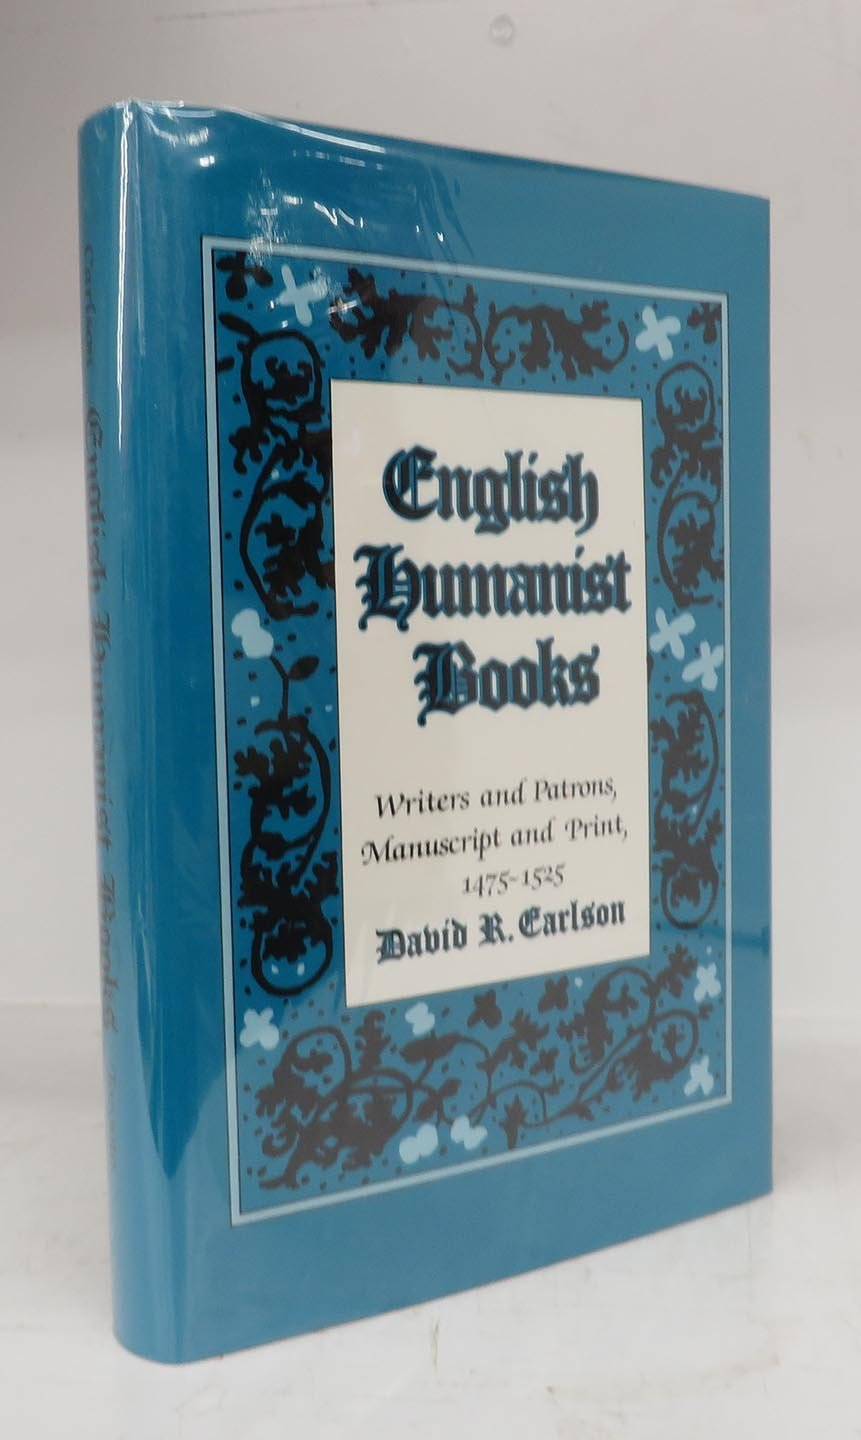 English Humanist Books: Writers and Patrons, Manuscript and Print, 1475-1525